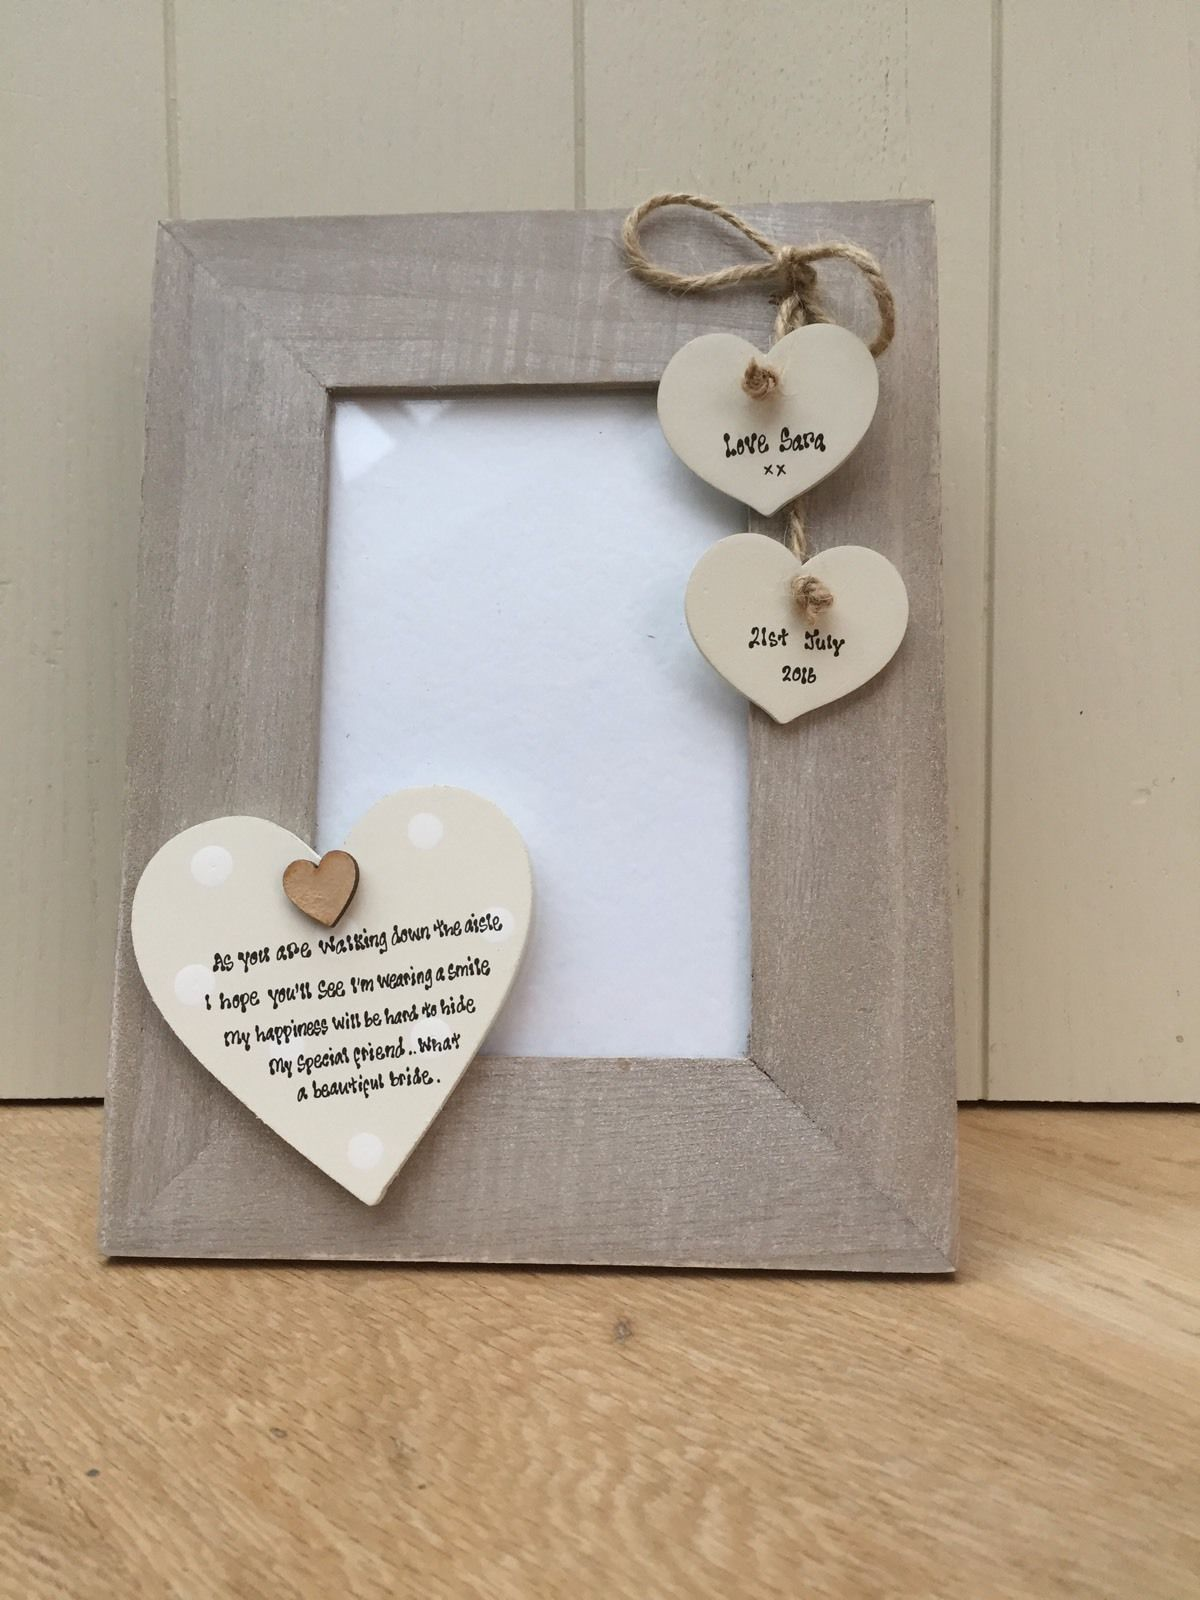 ... personalised Chic Photo Frame Wedding Day Gift For Bride From Friend